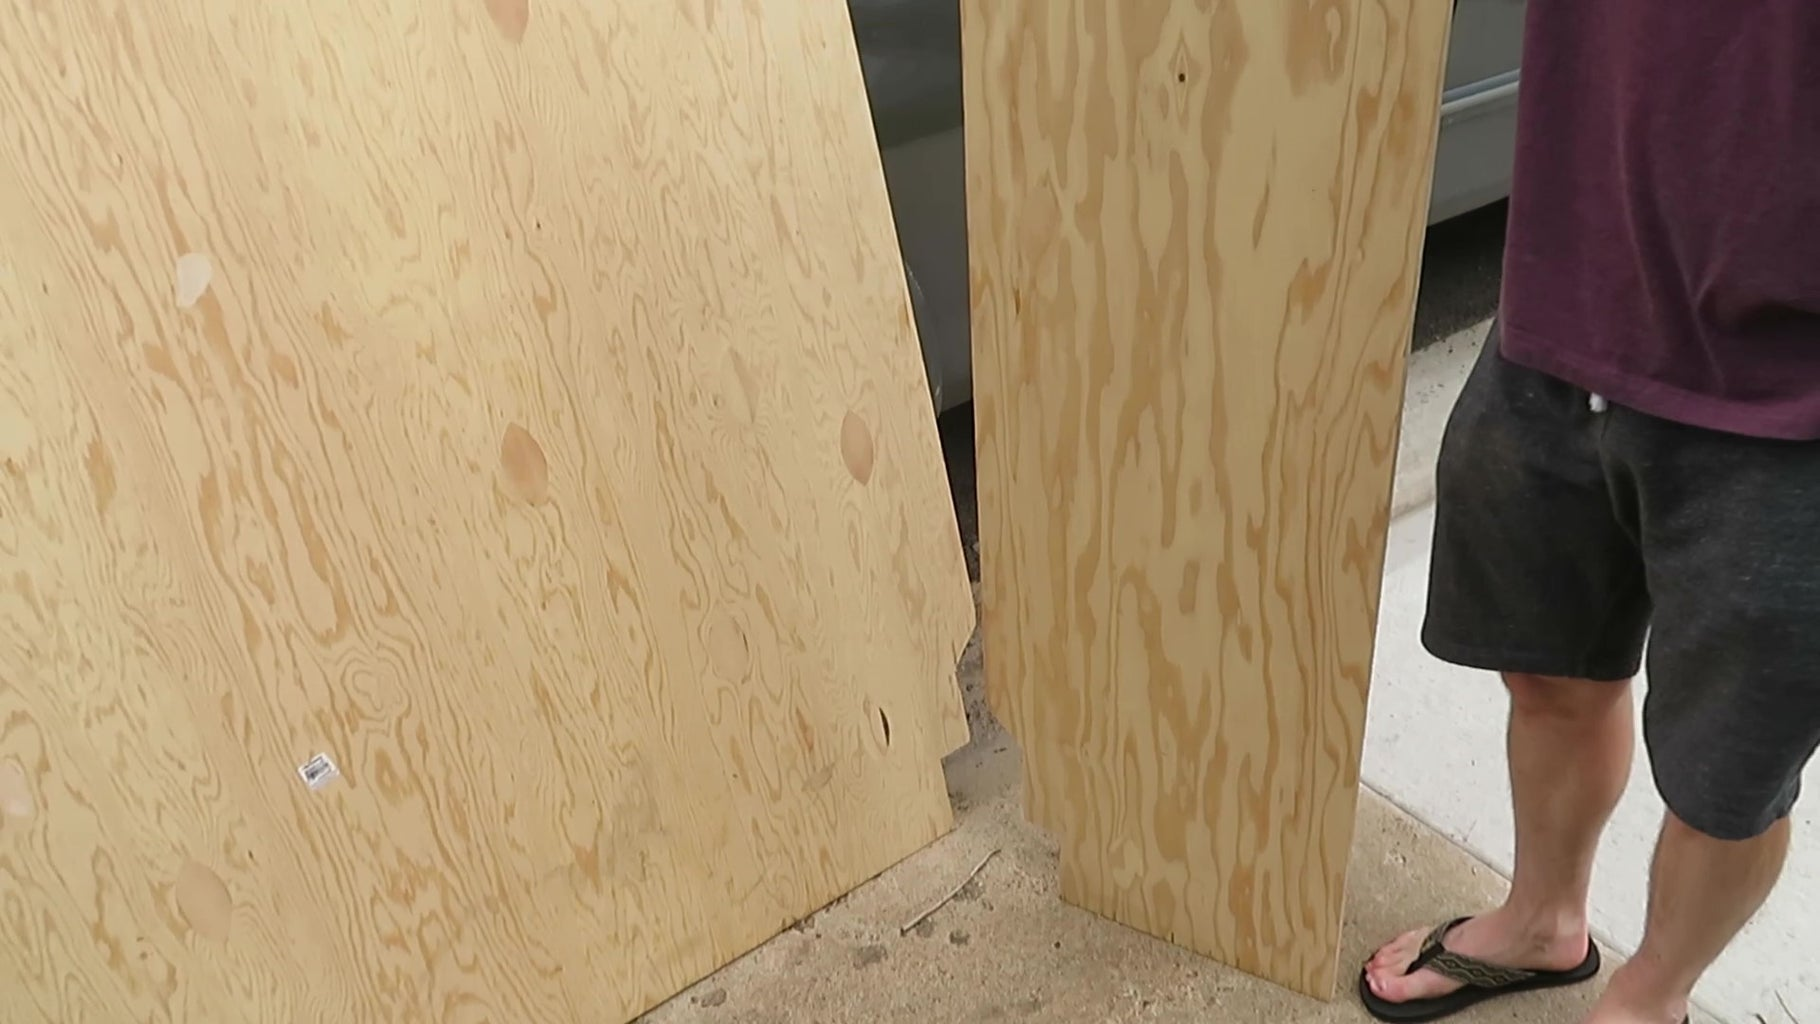 Step 2: Measure Bed Corners, Cut Plywood, and Lay It on Top of 2x6 Beams